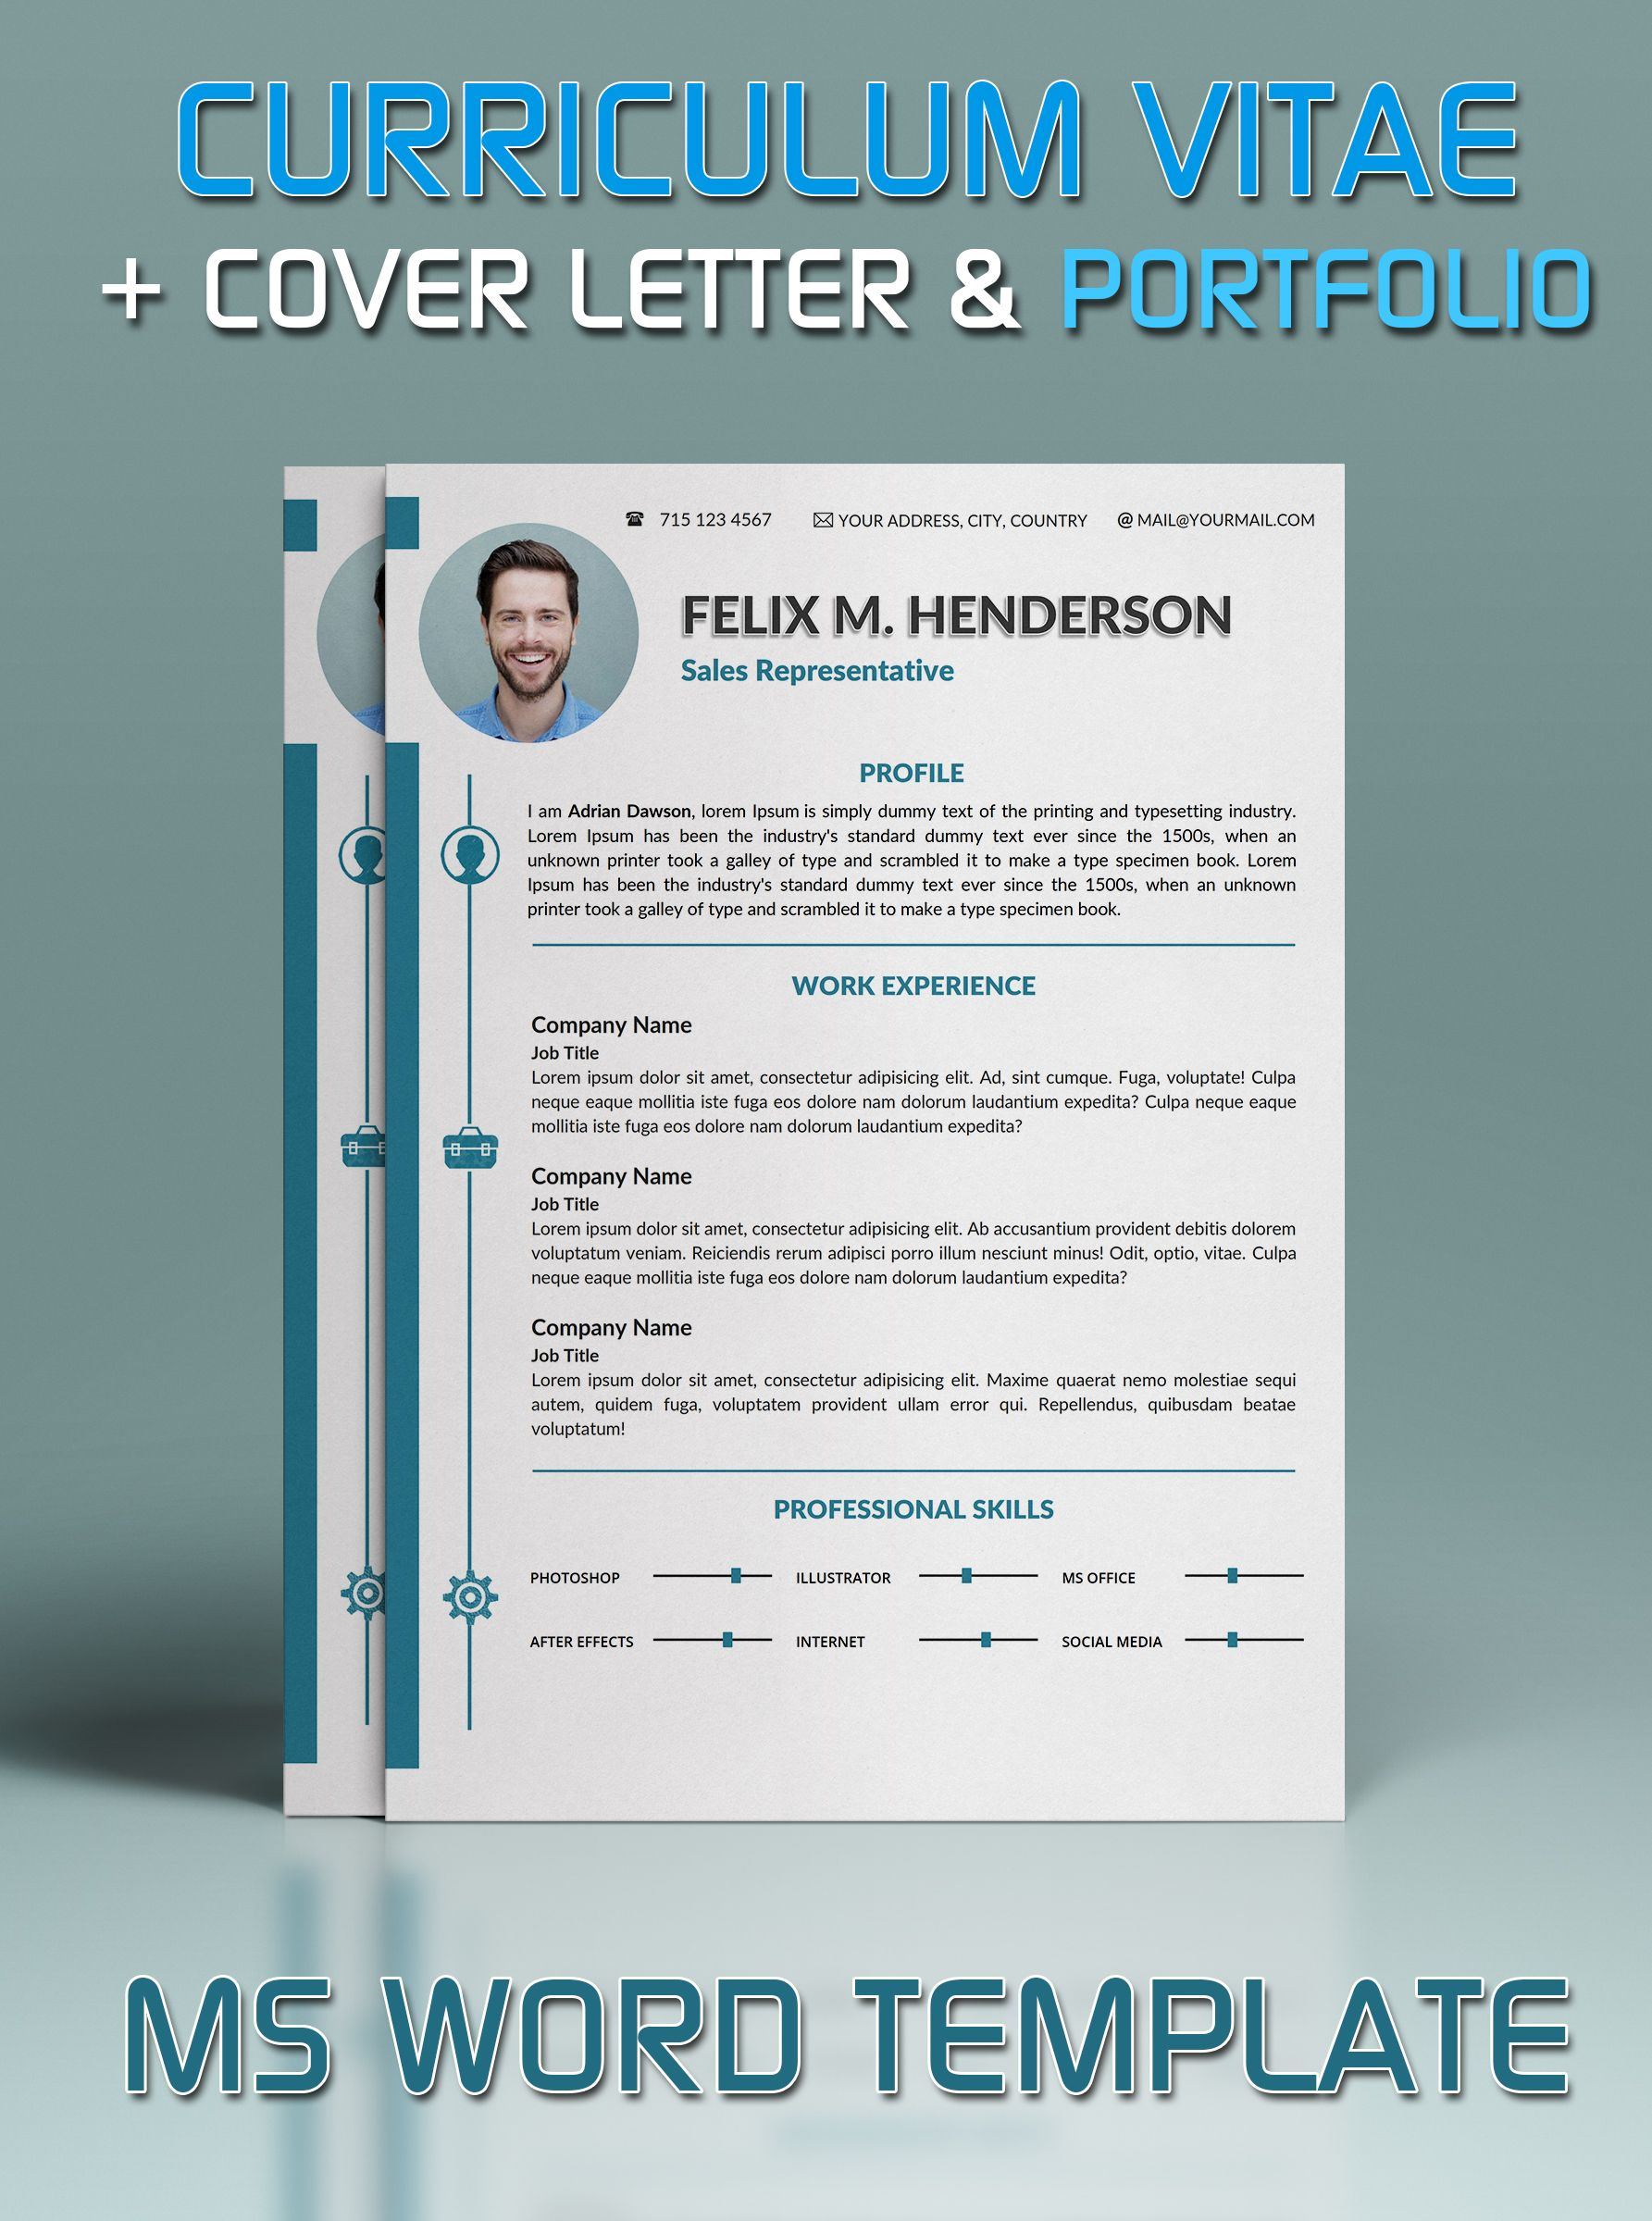 Resume Template in Microsoft Word, Cover Letter and Portfolio ...